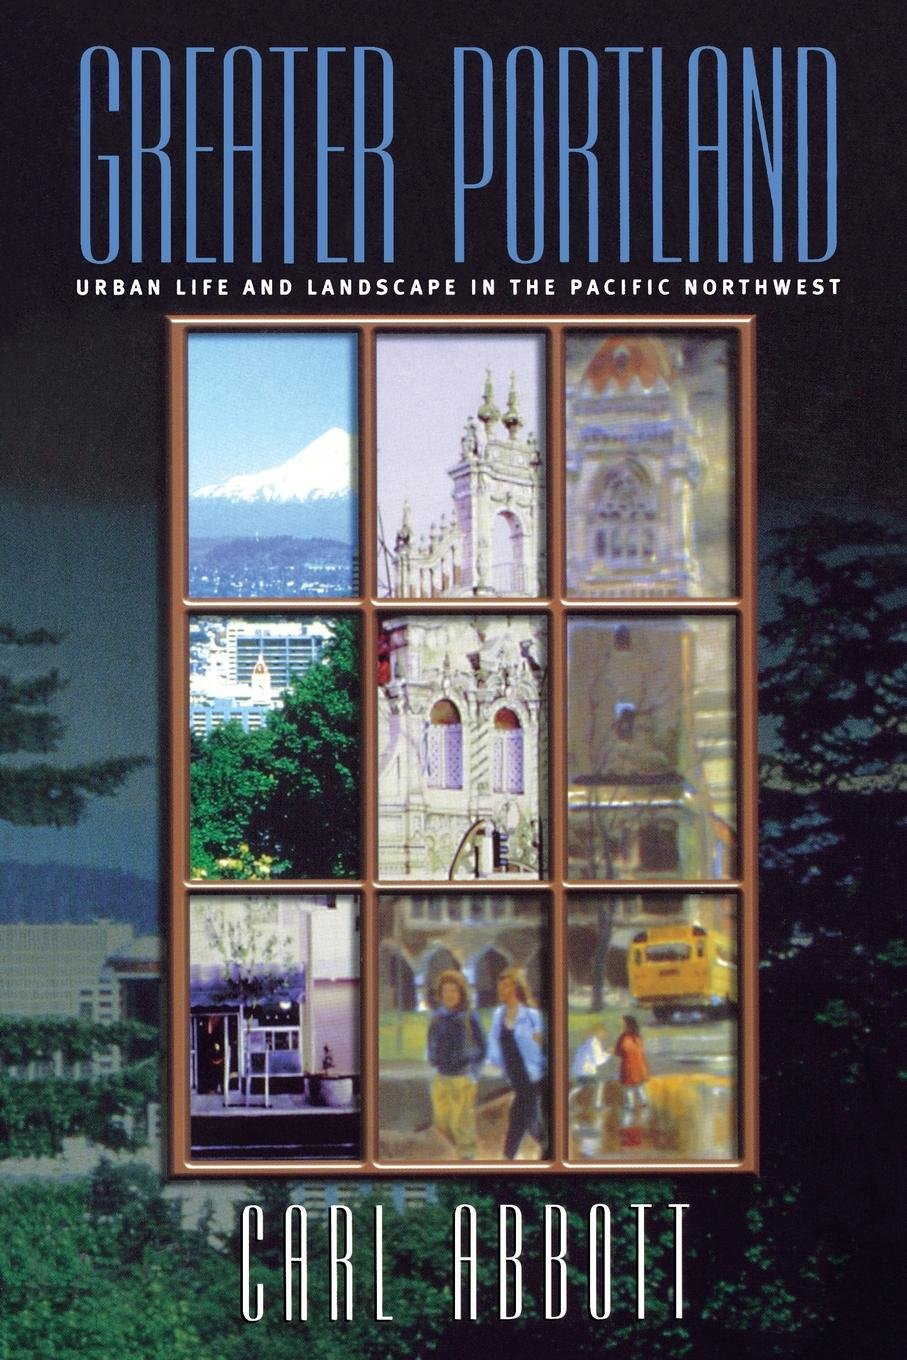 Greater Portland: Urban Life and Landscape in the Pacific Northwest ( Metropolitan Portraits): Carl Abbott: 9780812217797: Amazon.com: Books